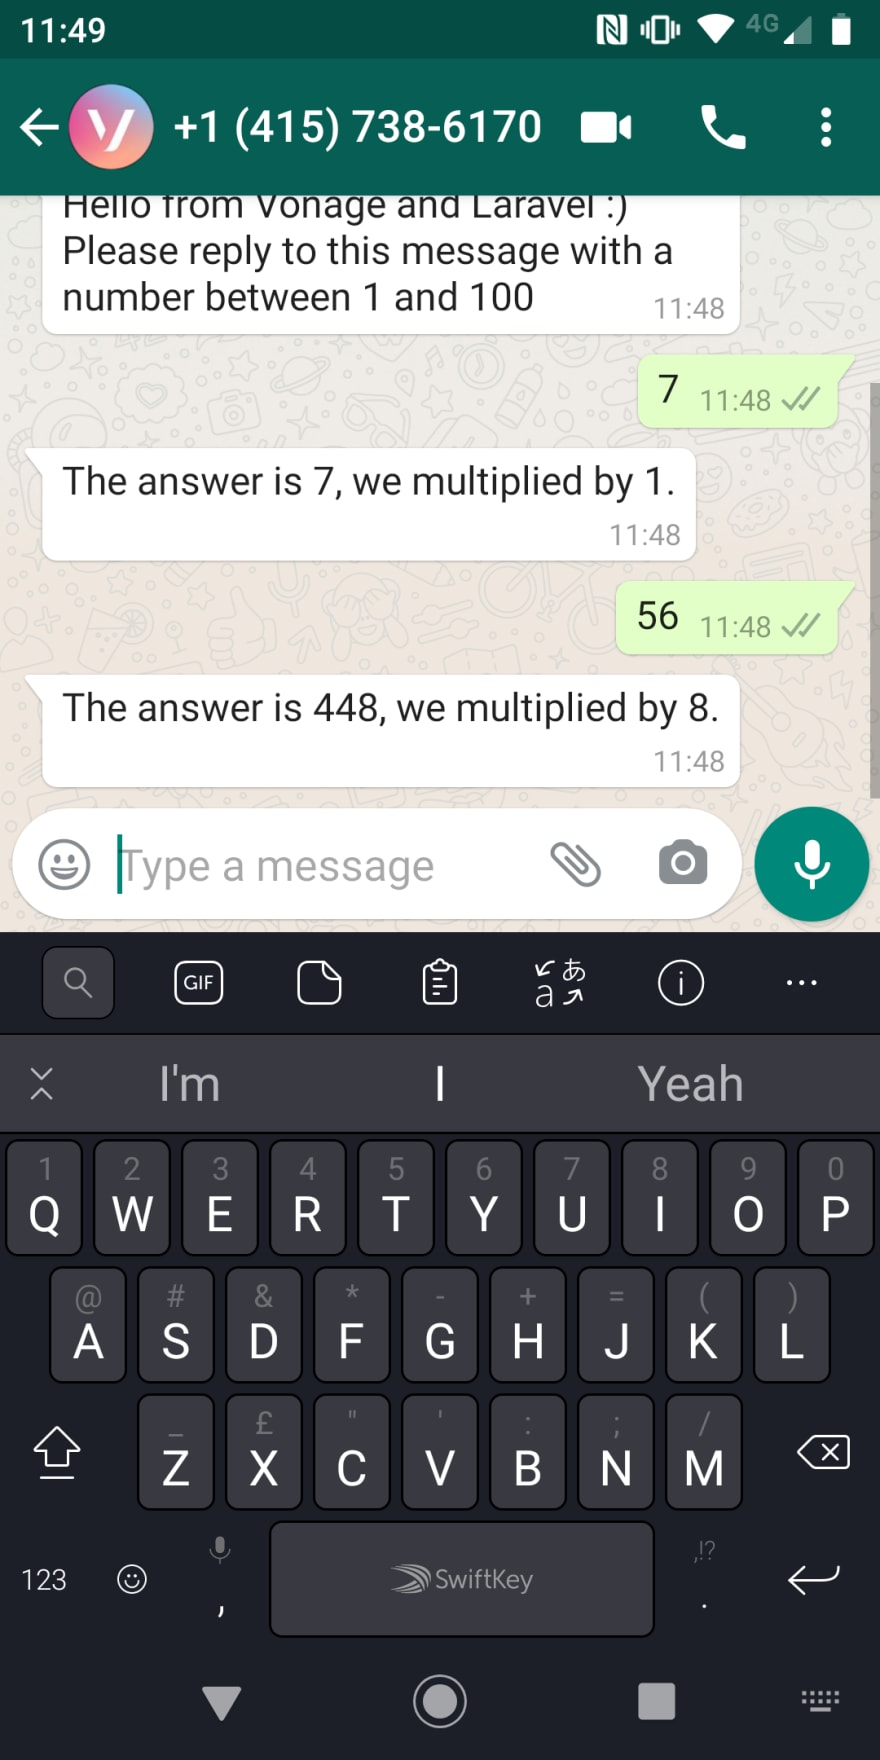 Screenshot of the messages between user and application in whatsapp on a mobile phone